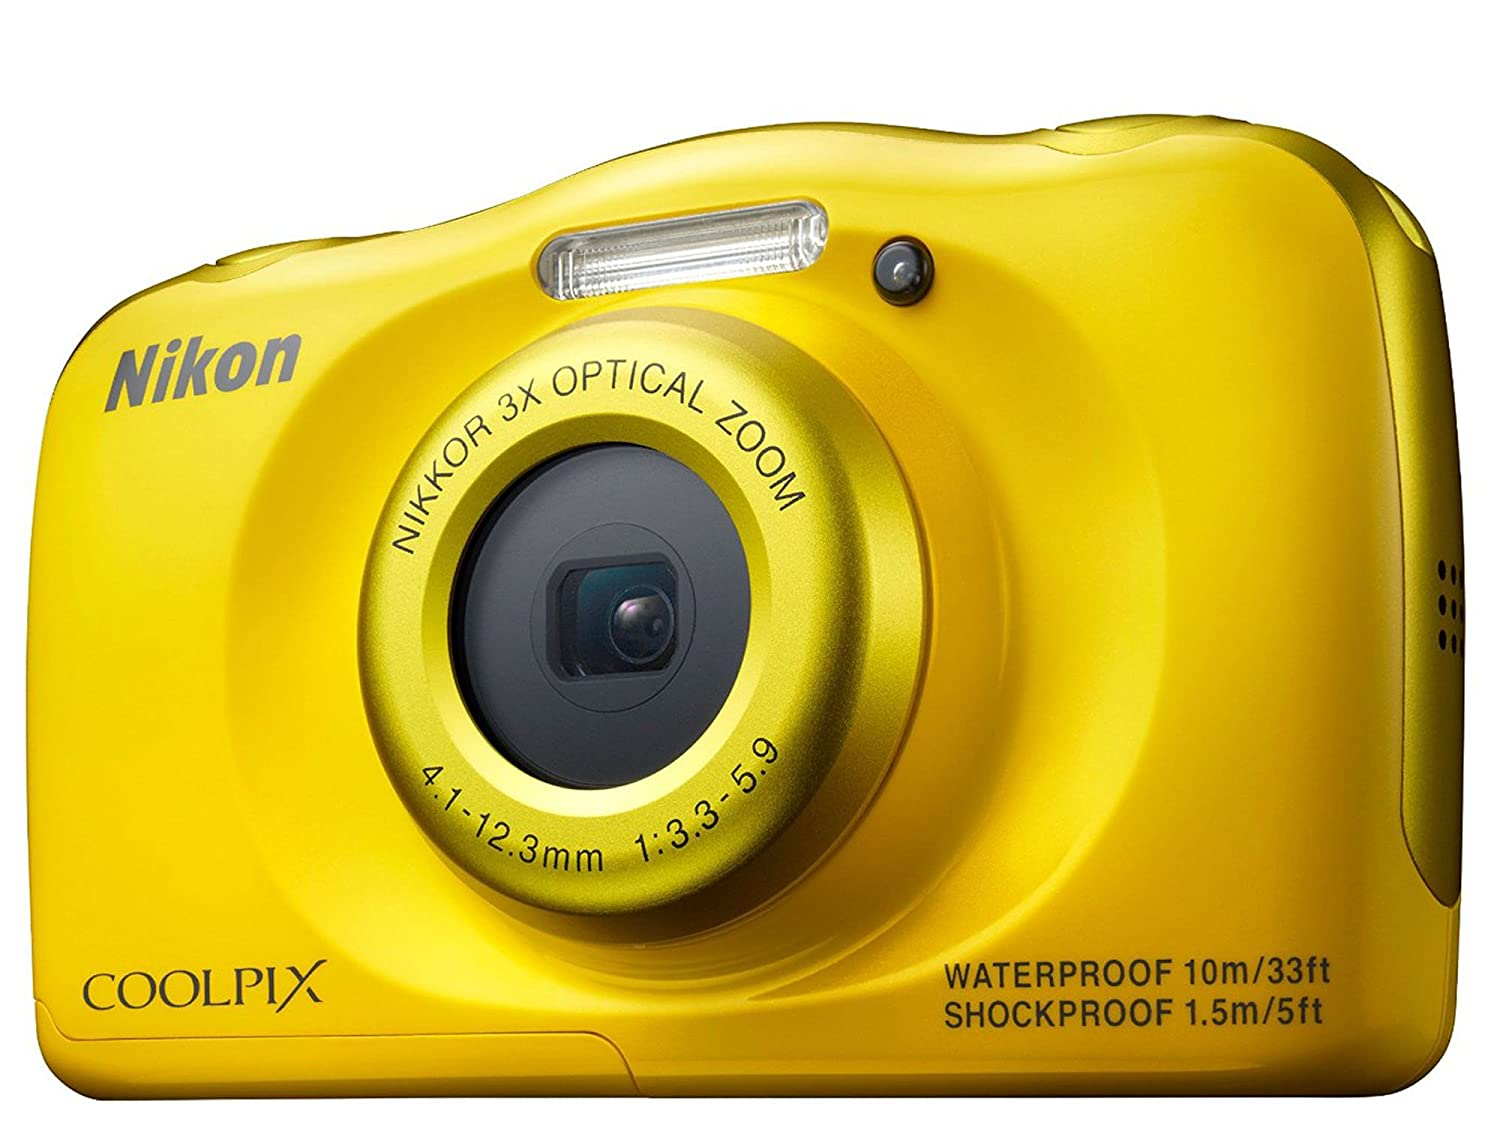 Nikon Coolpix amazon